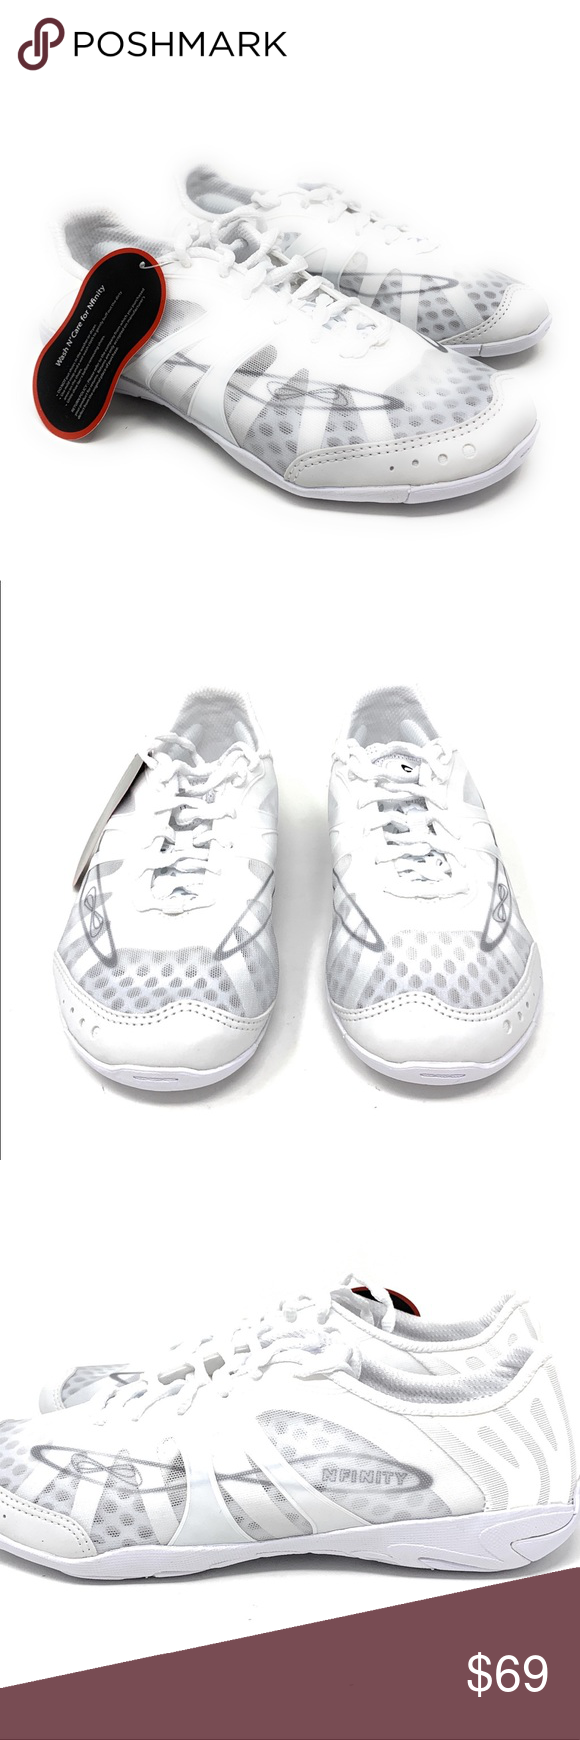 Nfinity Women S Vengeance Cheer Shoes Size 7 Nwt Cheer Shoes Nfinity Shoes Women